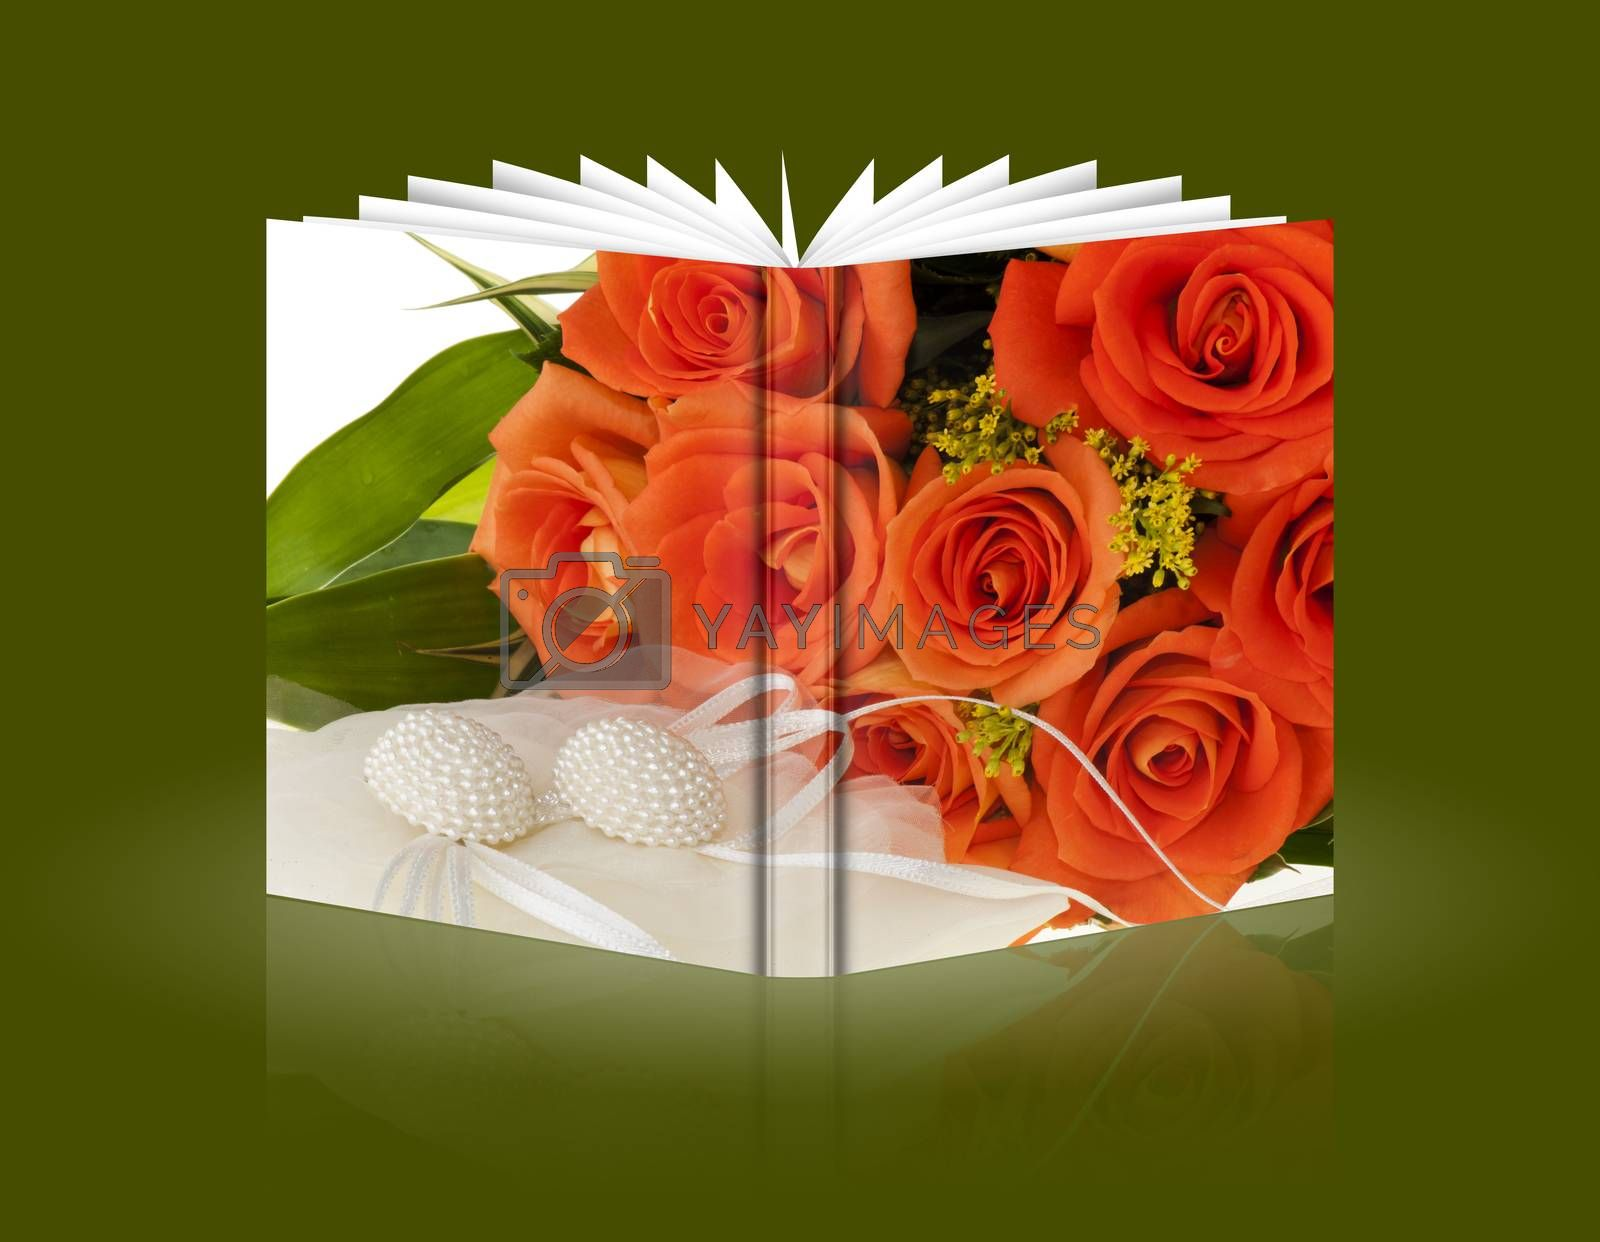 book of flowers and gift for a Valentine's Day